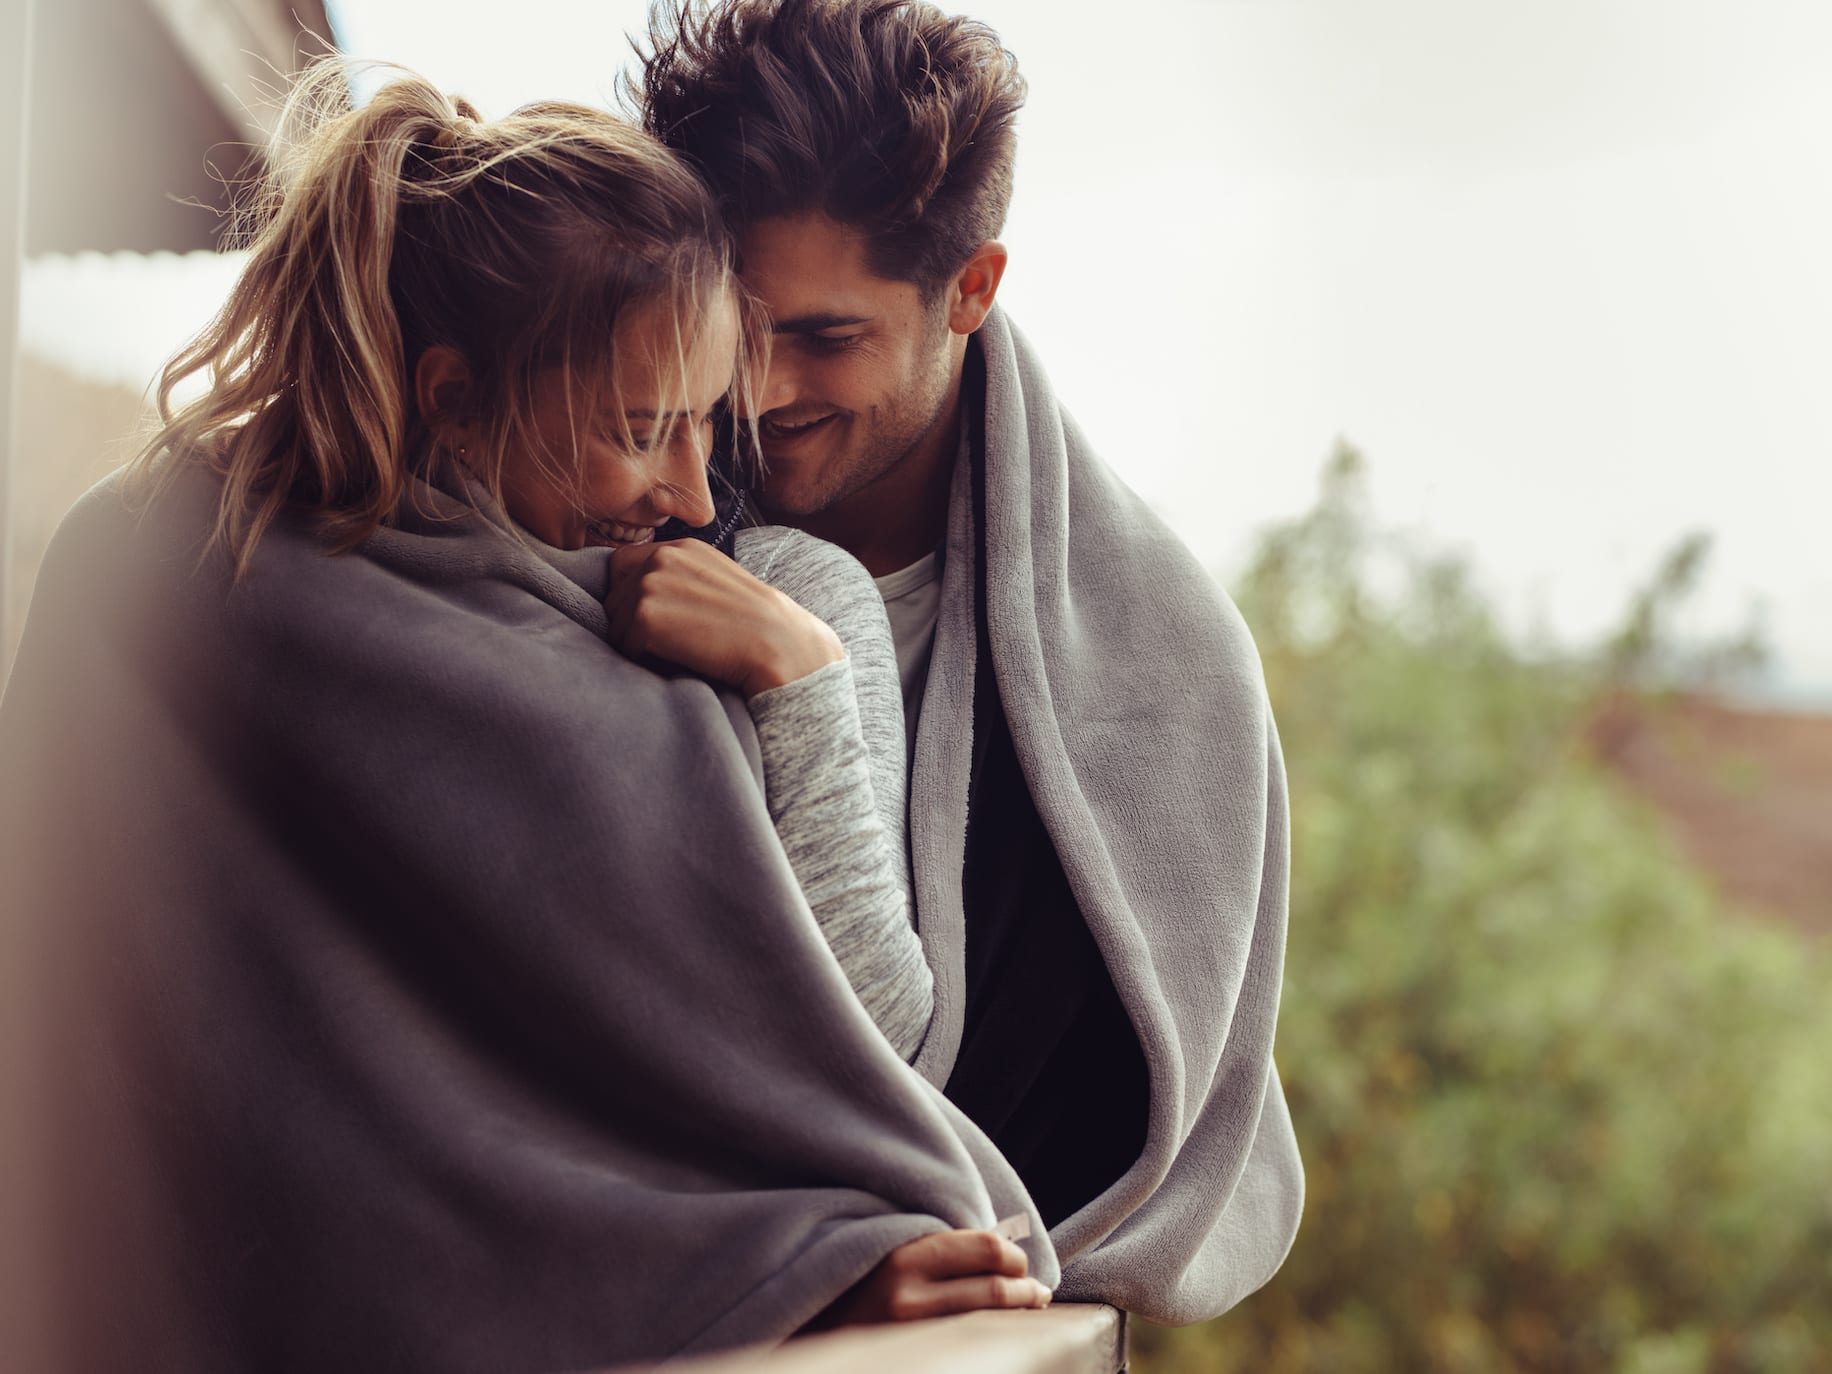 Premarital counseling questions to ask to set your marriage up for